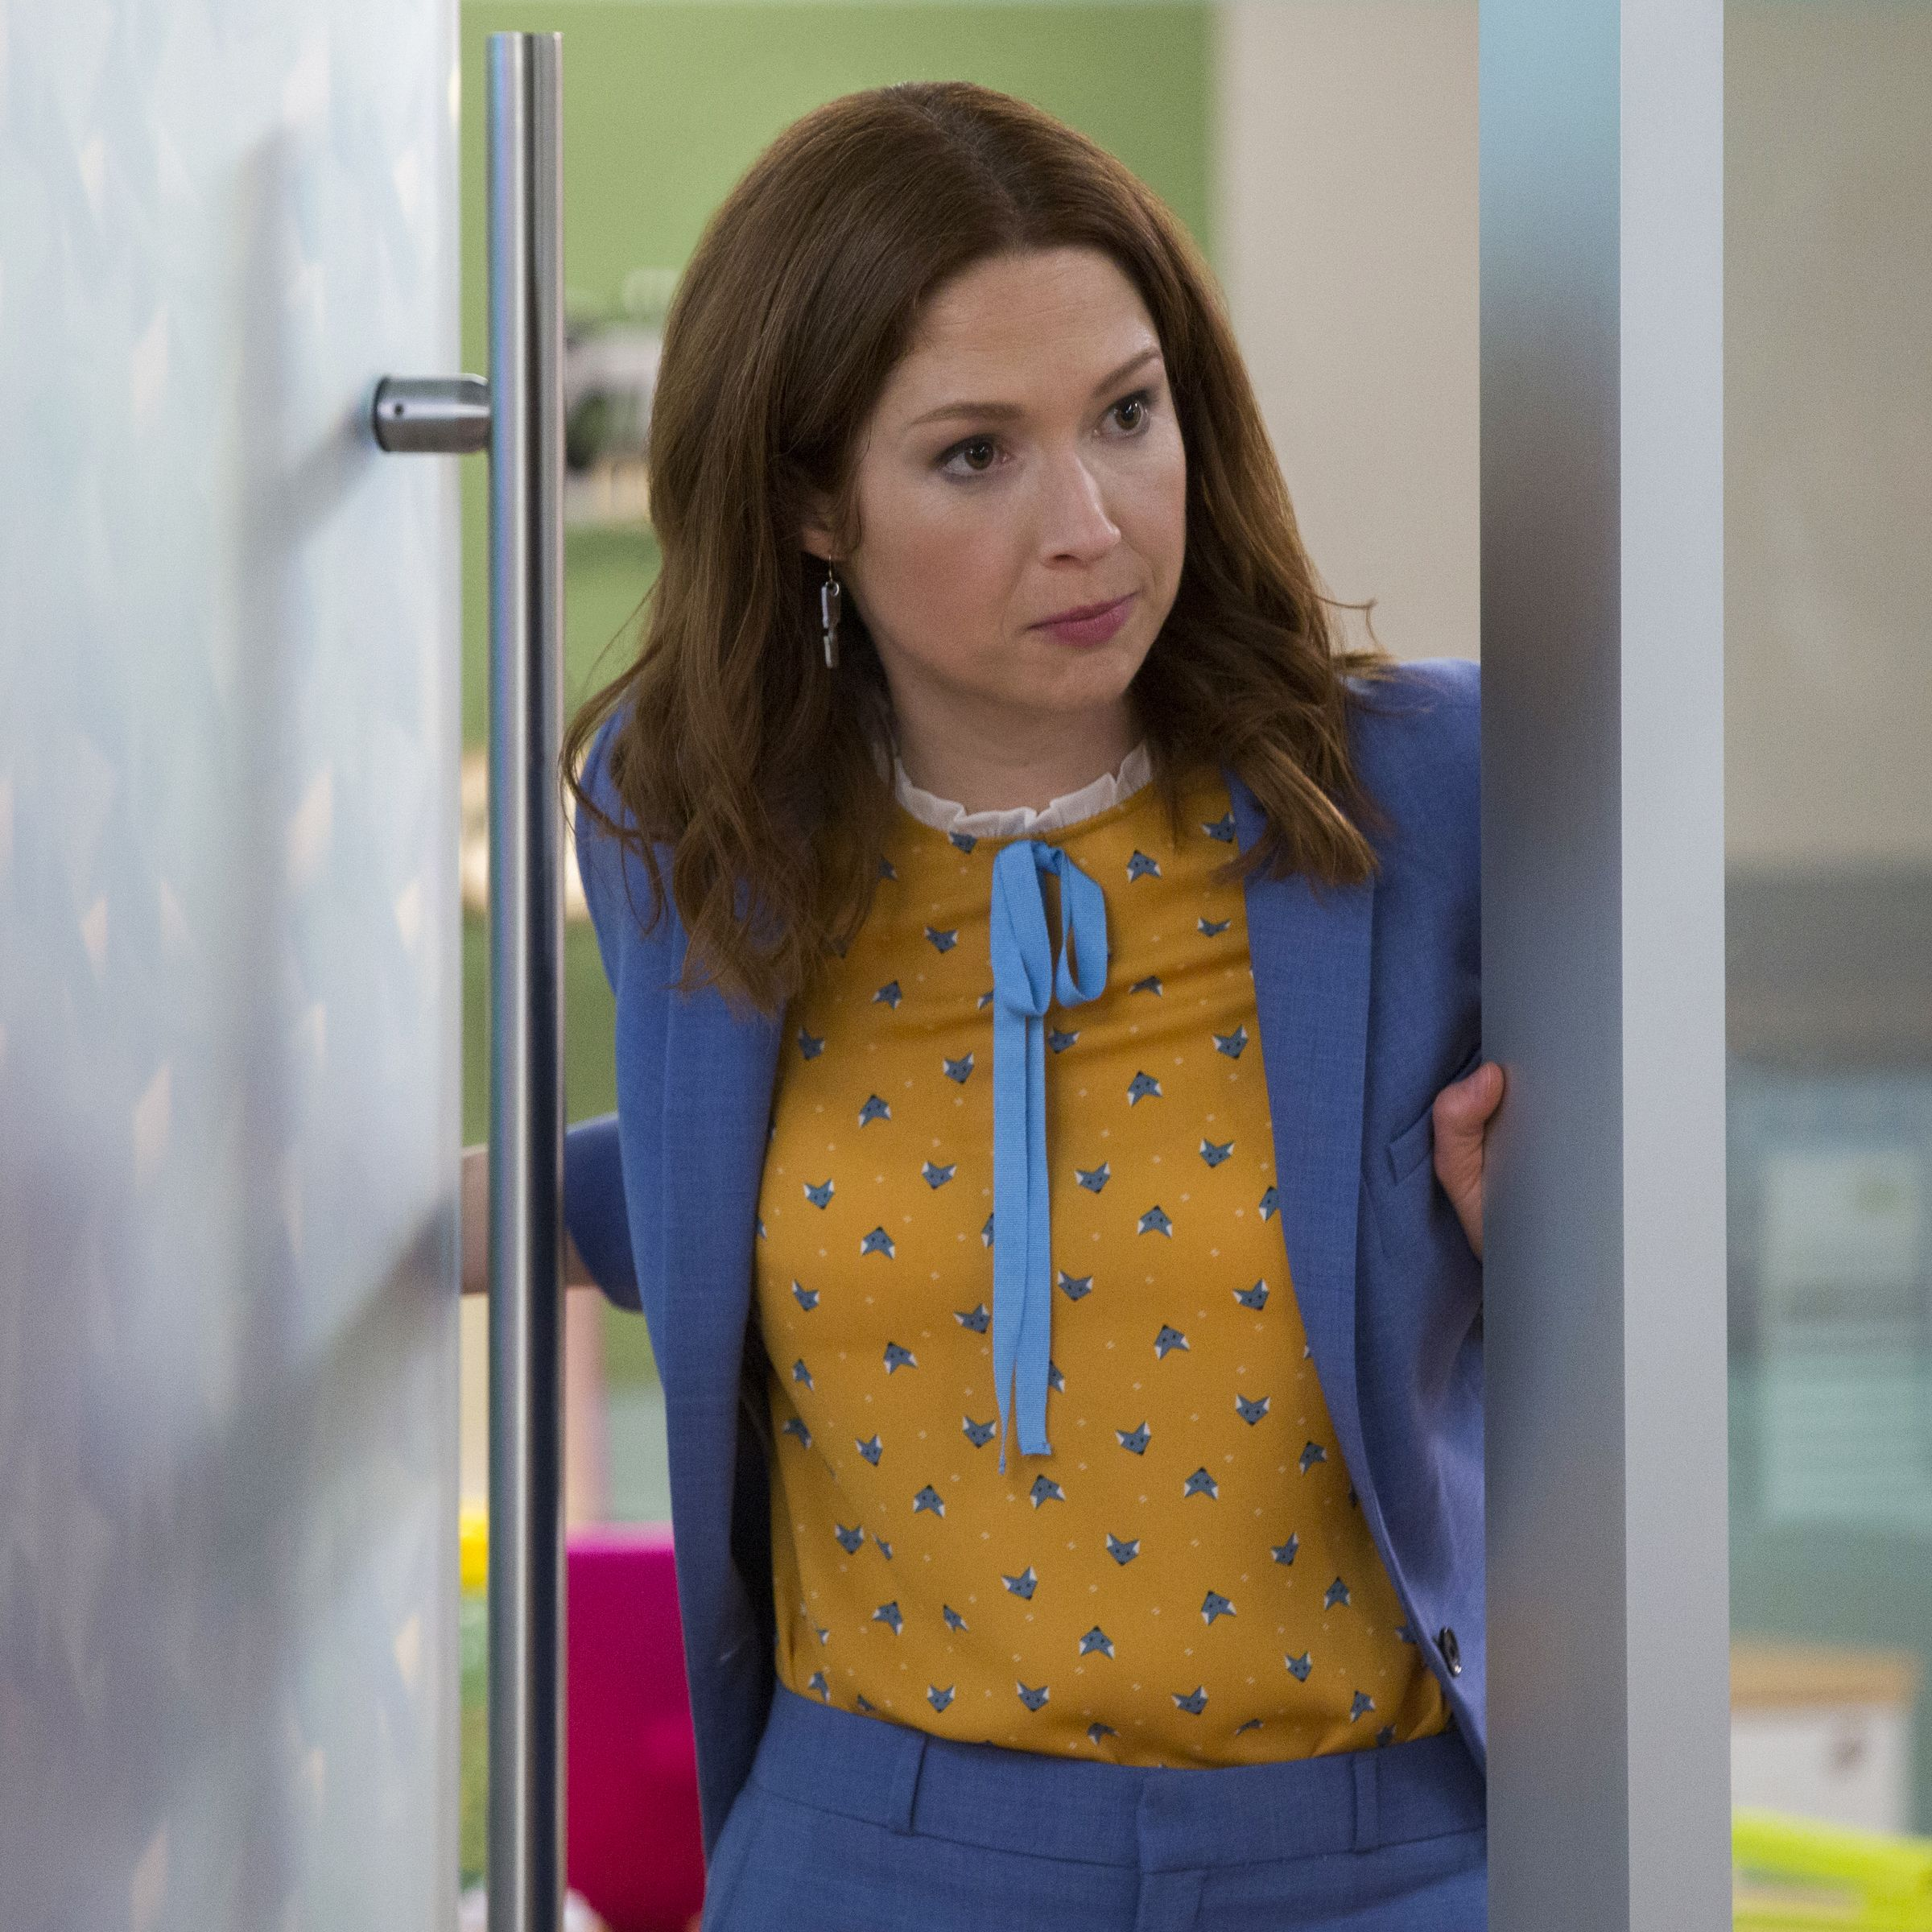 Unbreakable Kimmy Schmidt star says interactive episode will have different vibe to Black Mirror: Bandersnatch